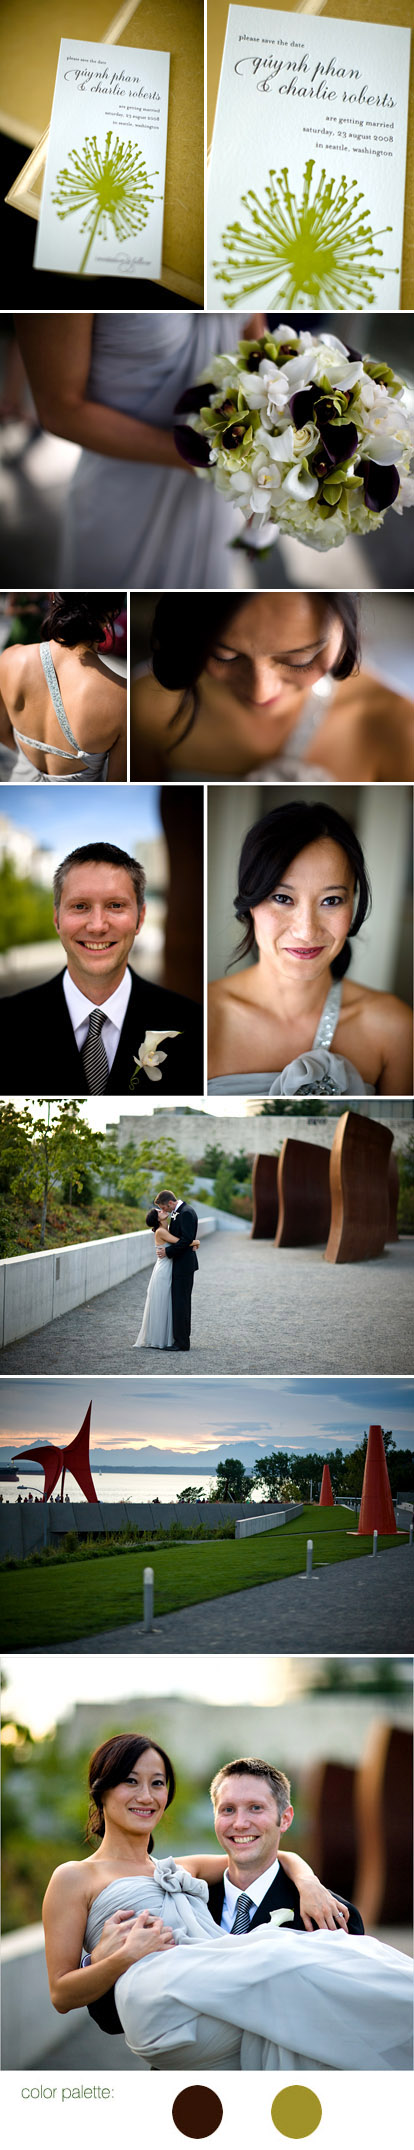 Bradley Hanson Photography, green and brown color palette, modern wedding at the Seattle Olympic Sculpture Park